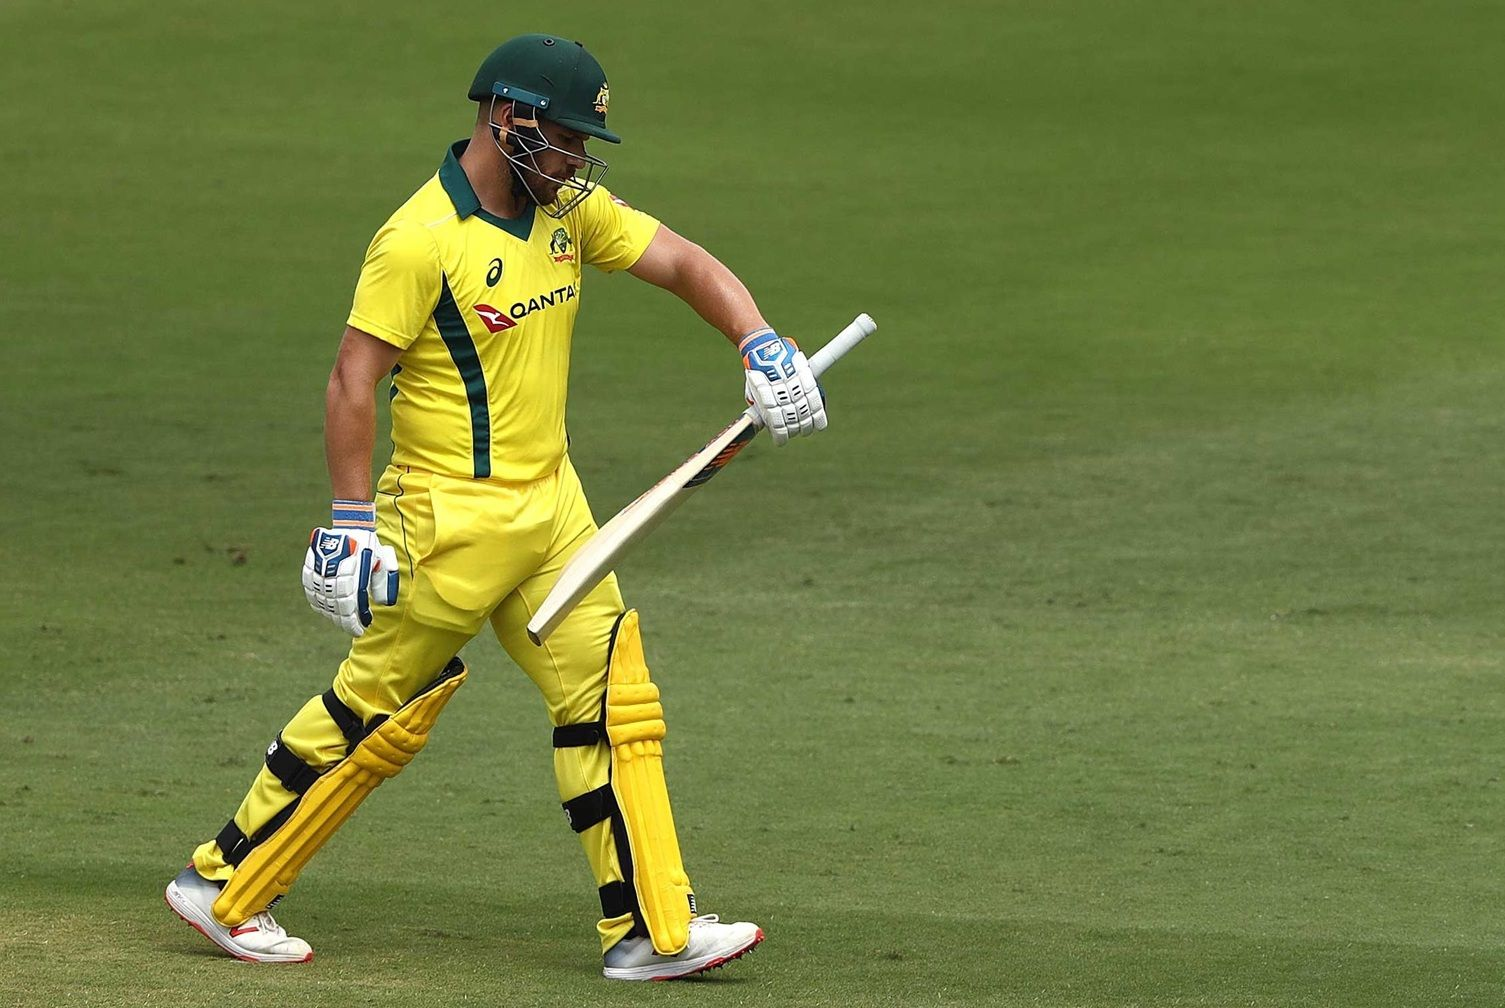 Aaron Finch was dismissed for a duck in his 100th ODI.